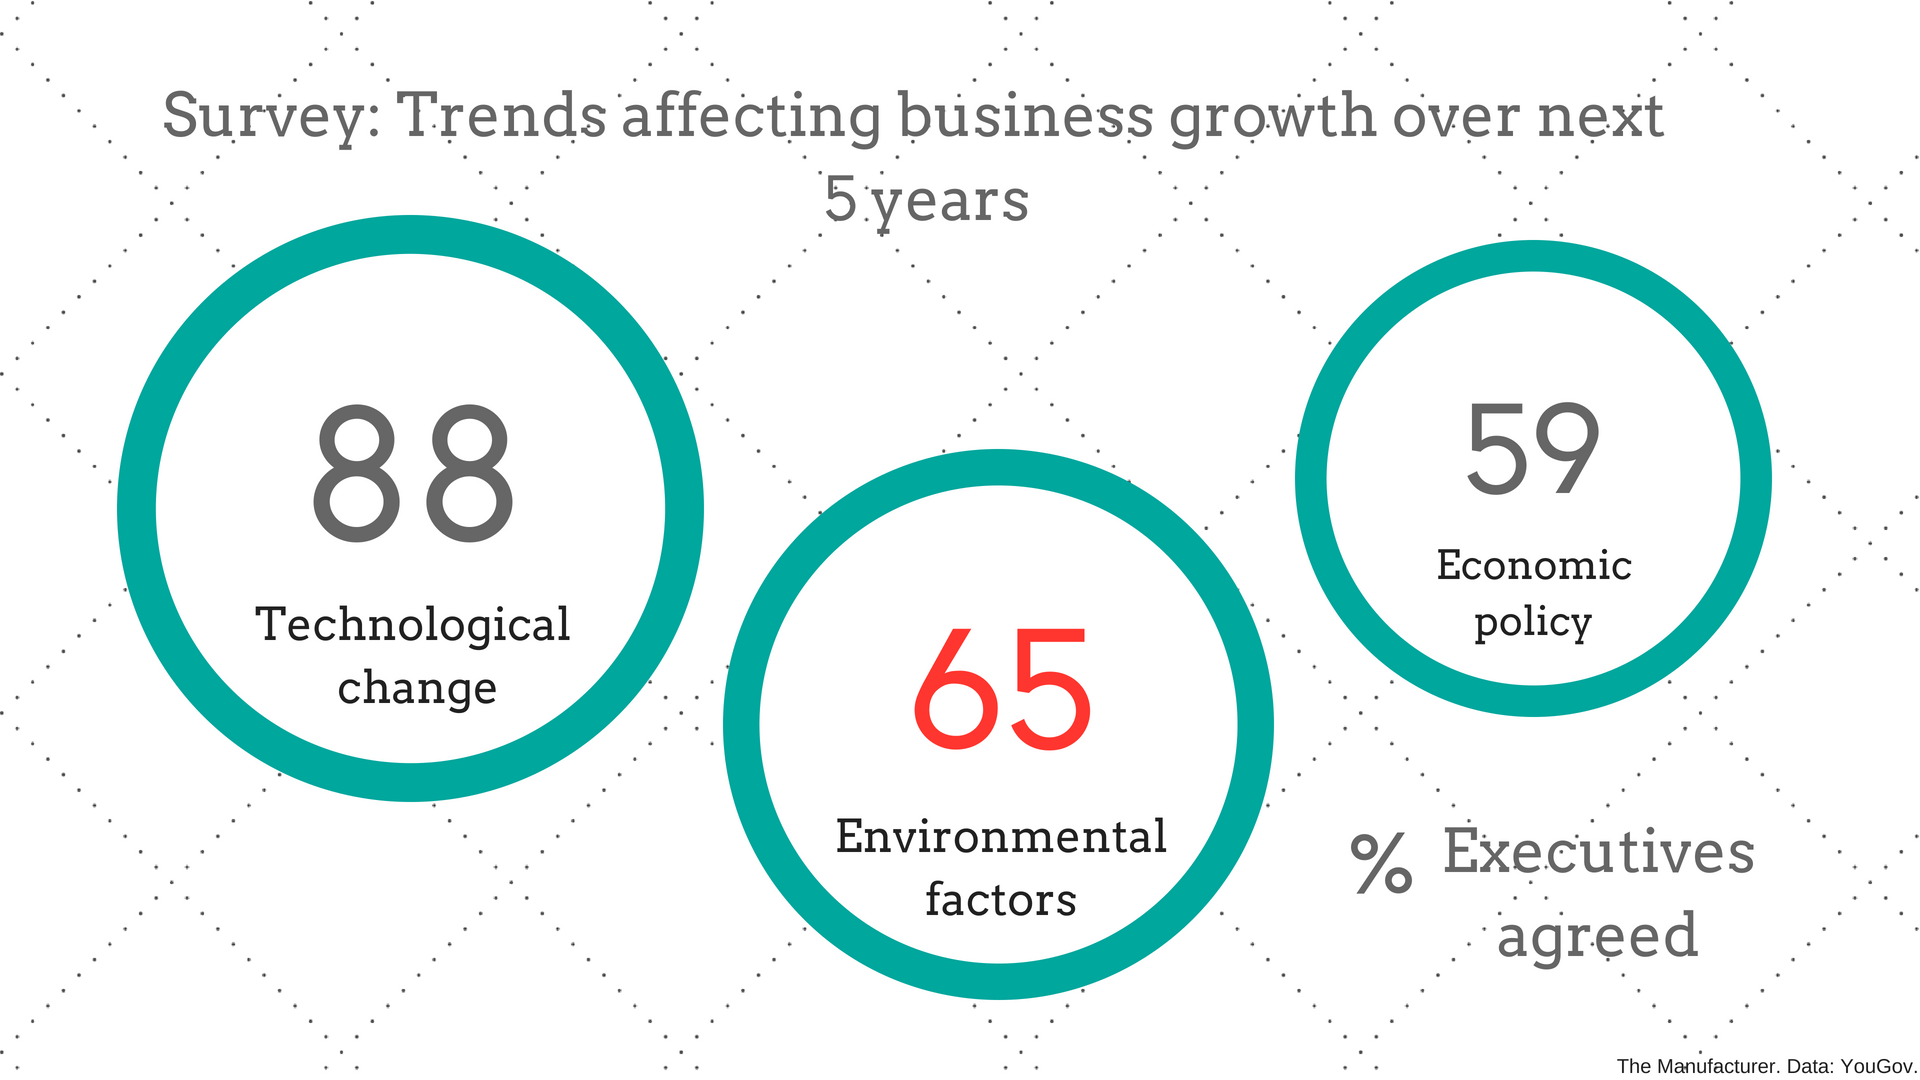 Infographic: Trends affecting business growth